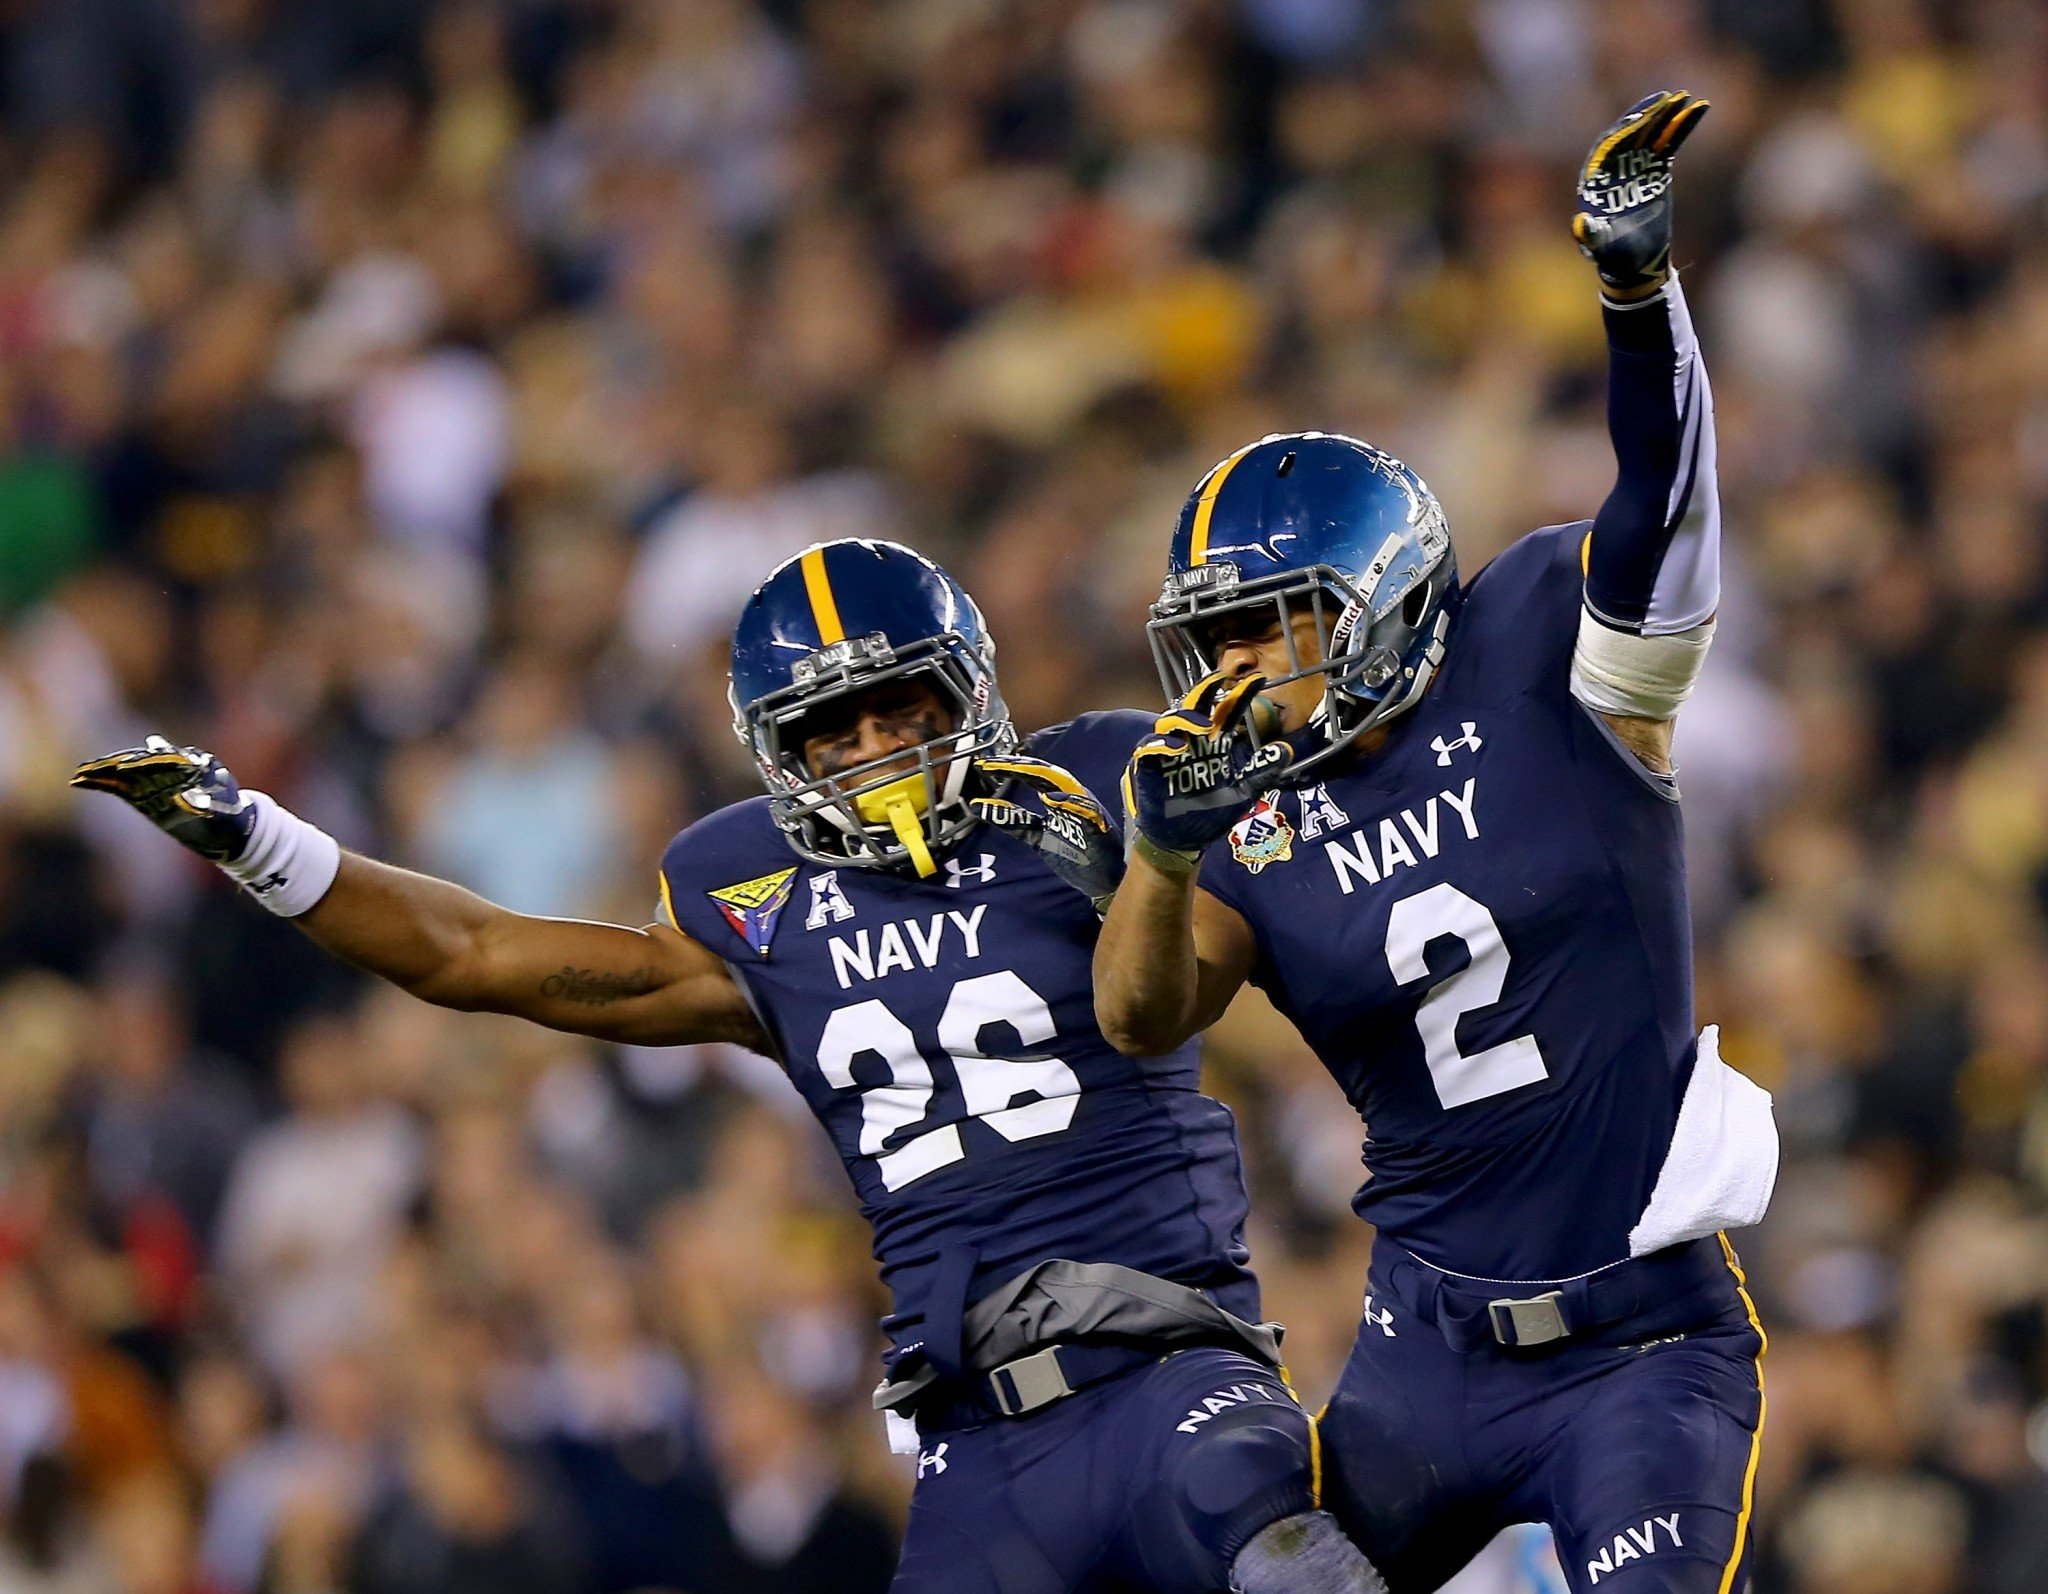 This is what Navy wore in 2015 for its 14th-straight win over Army. (Getty)